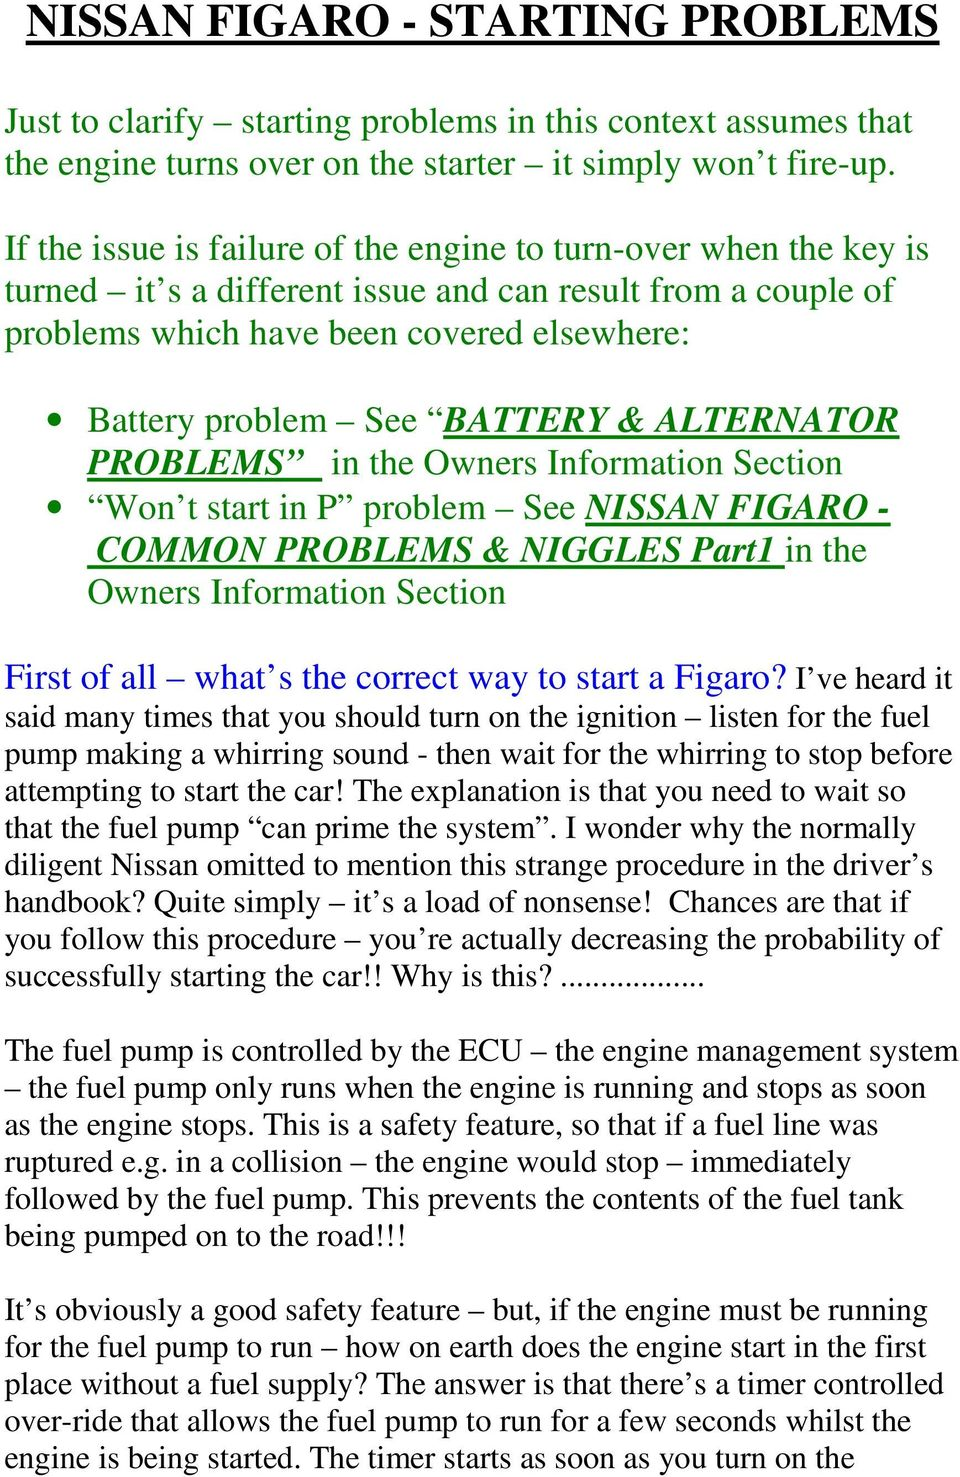 Nissan Figaro Starting Problems Pdf Daewoo Leganza Fuel Filter Location Battery Alternator In The Owners Information Section Won T Start P Problem See